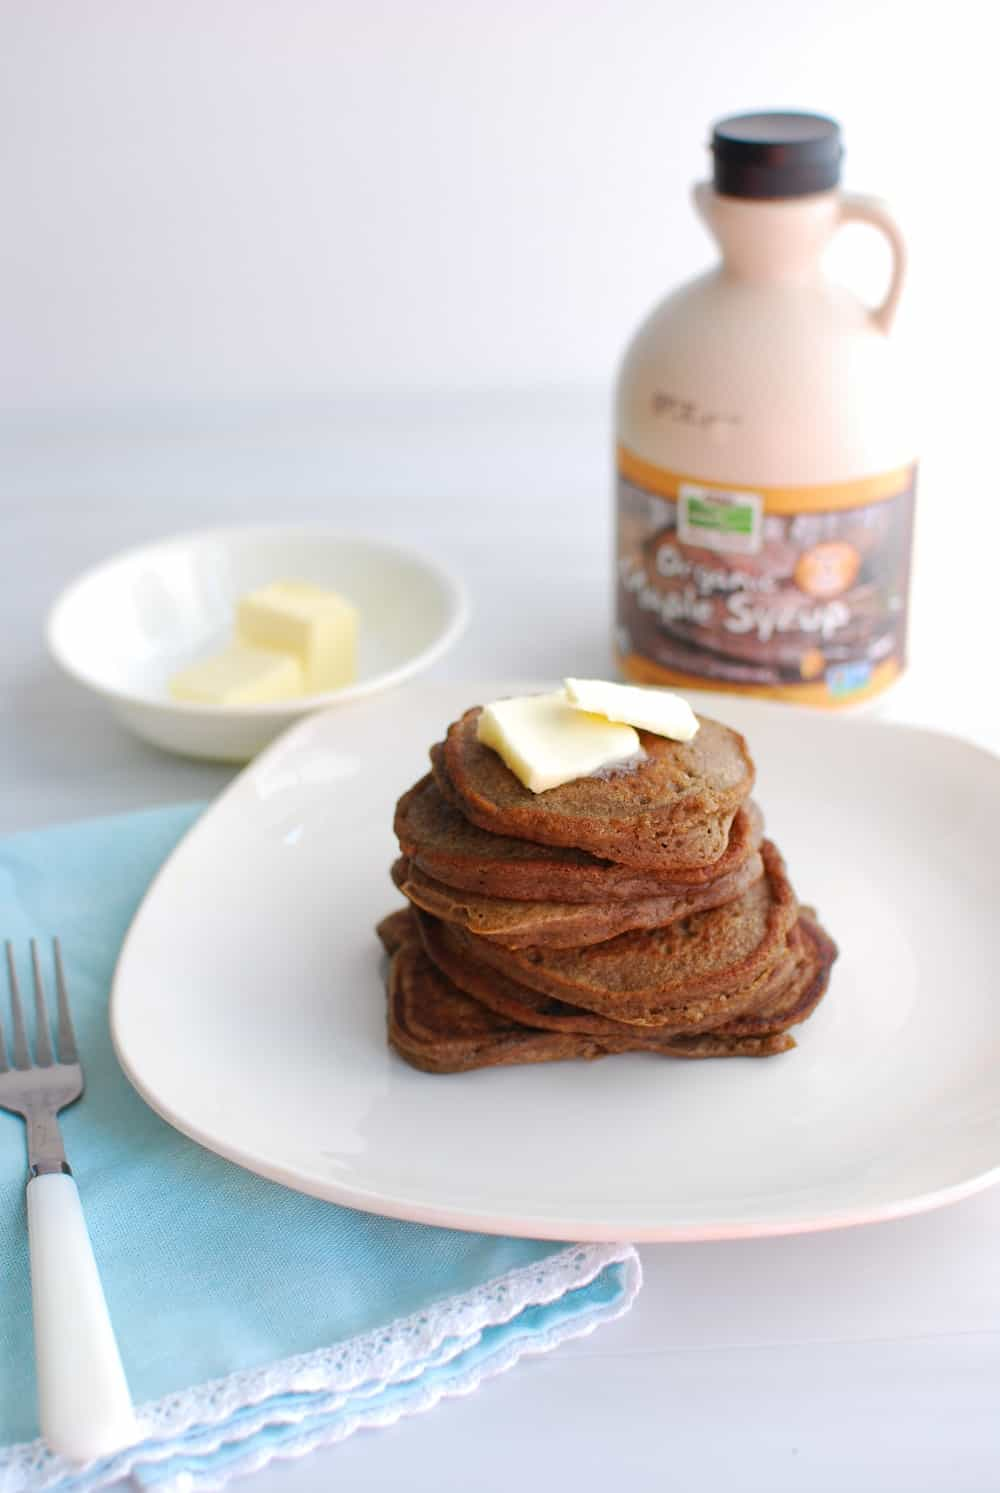 Grain free banana flour pancakes next to butter and maple syrup